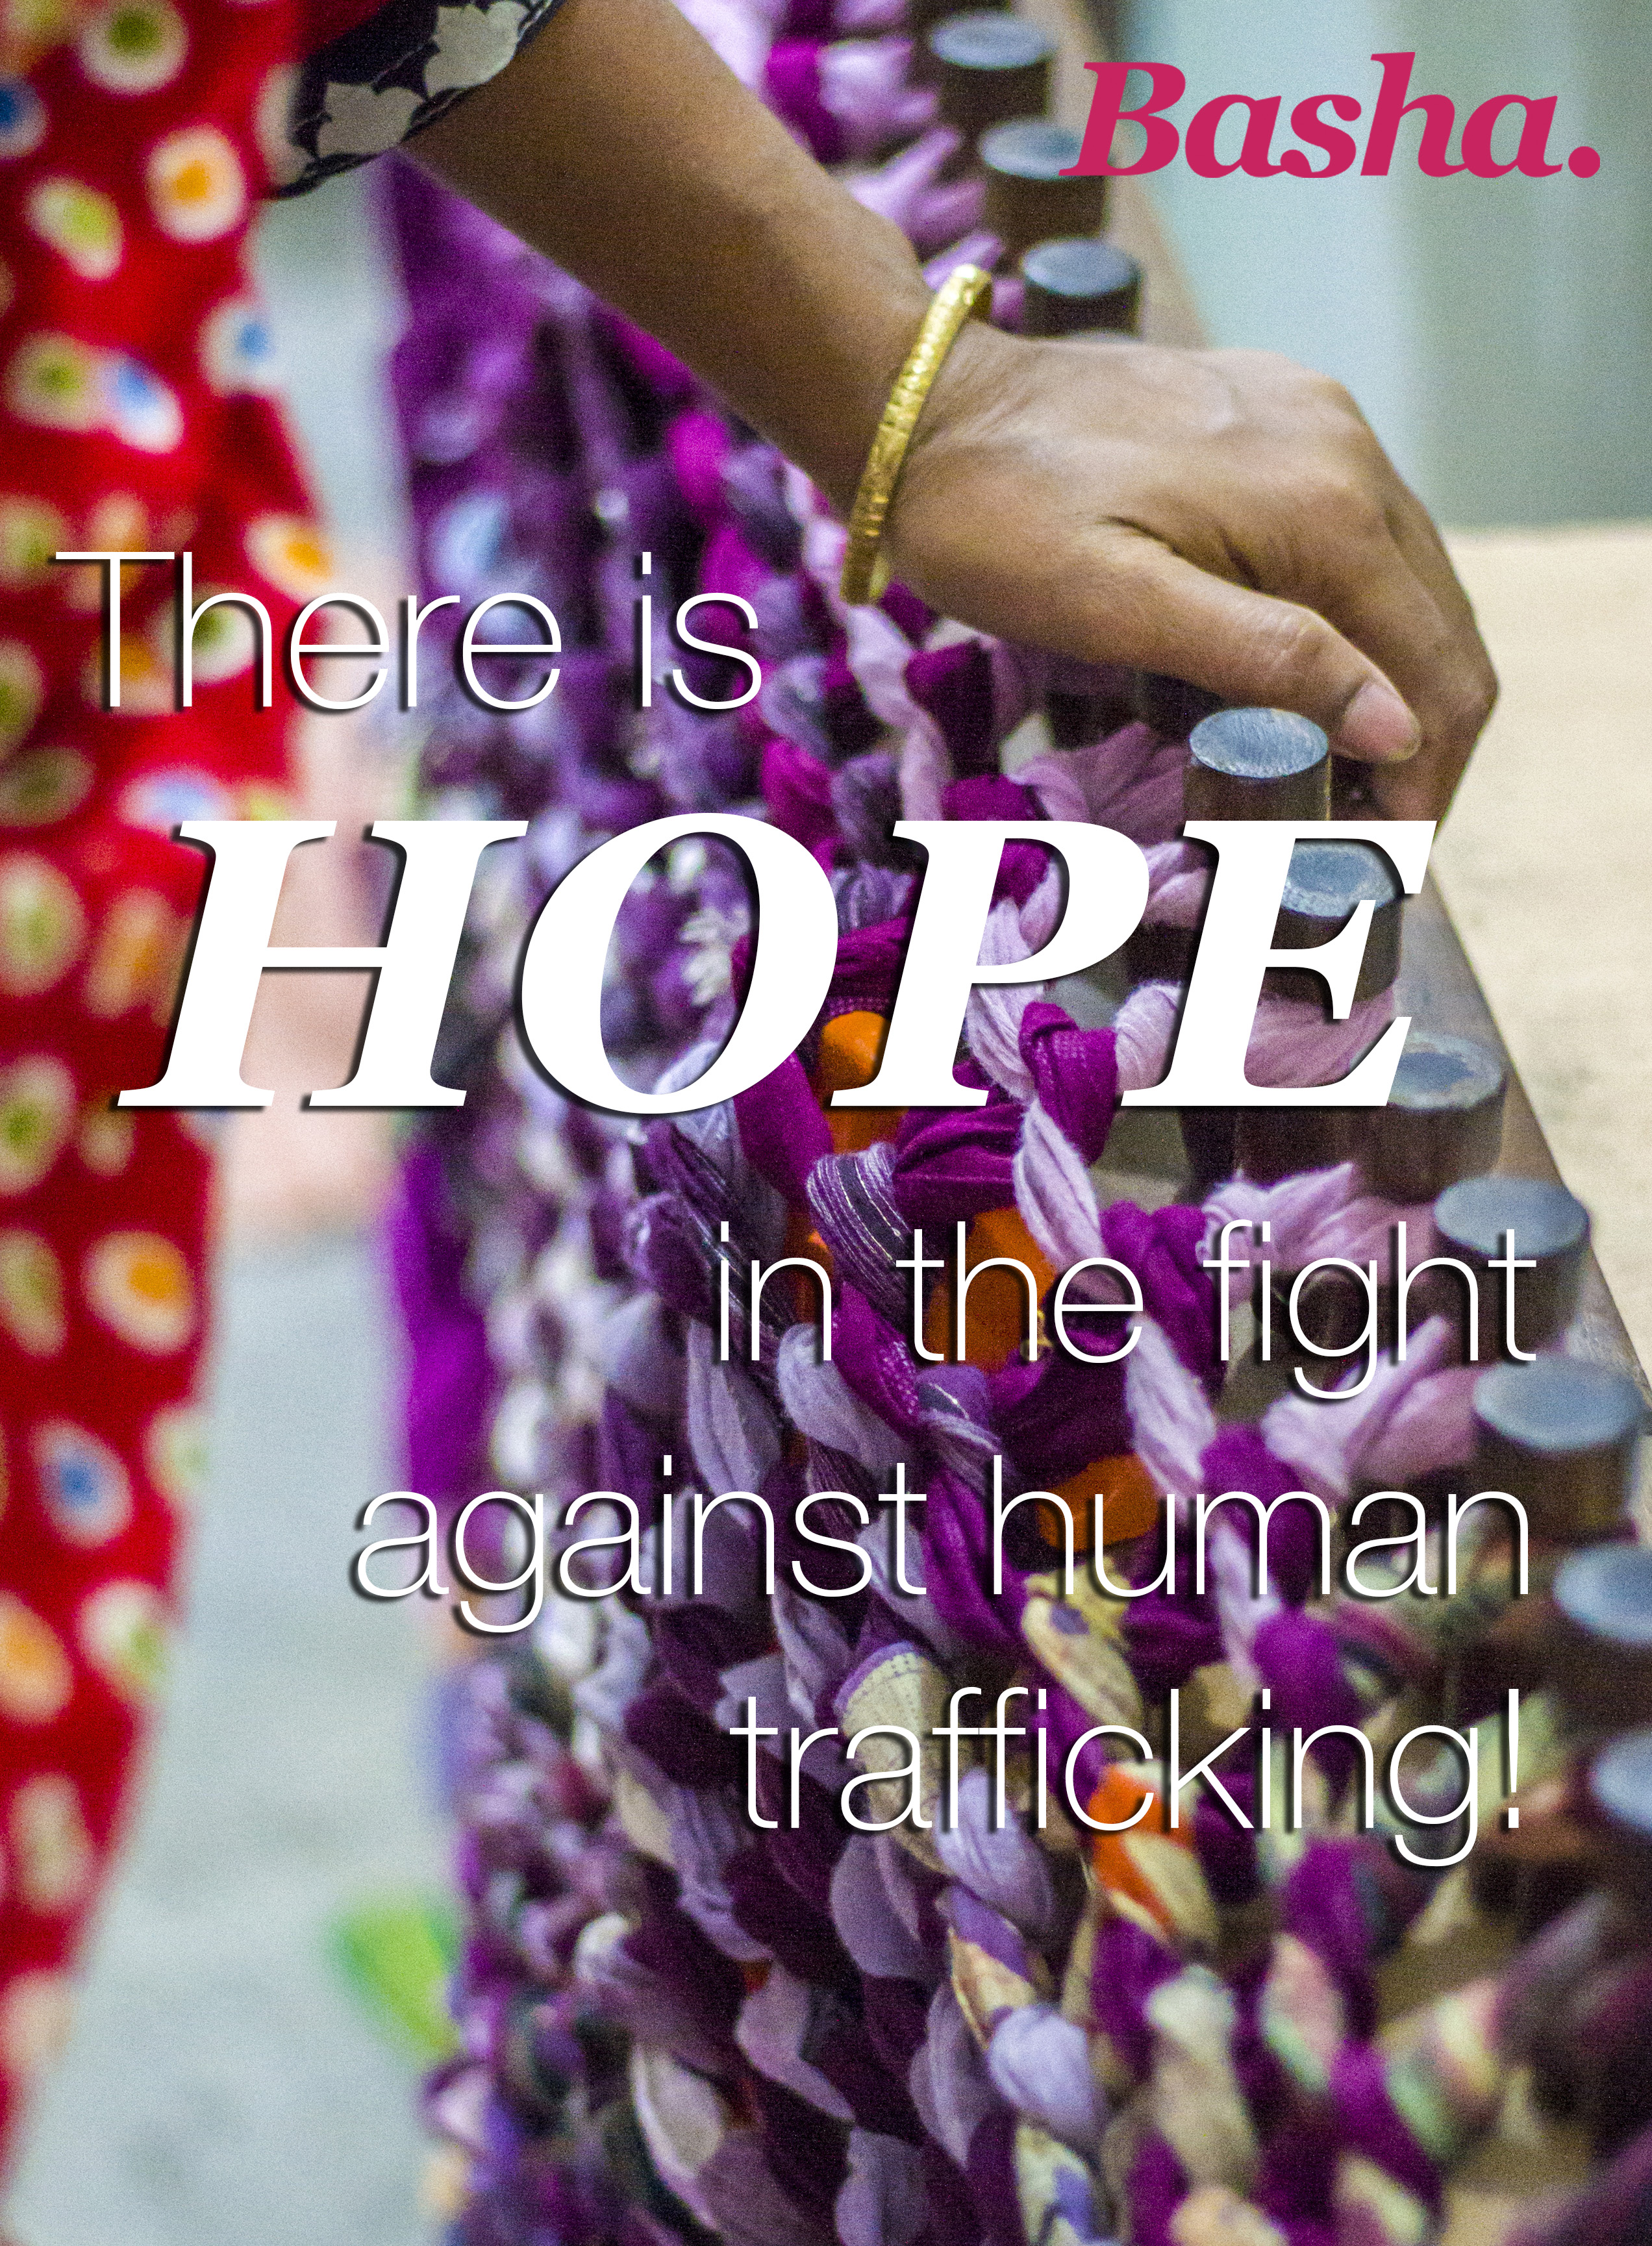 Photo of Basha artisan at work and words There is hope in the fight against human trafficking!